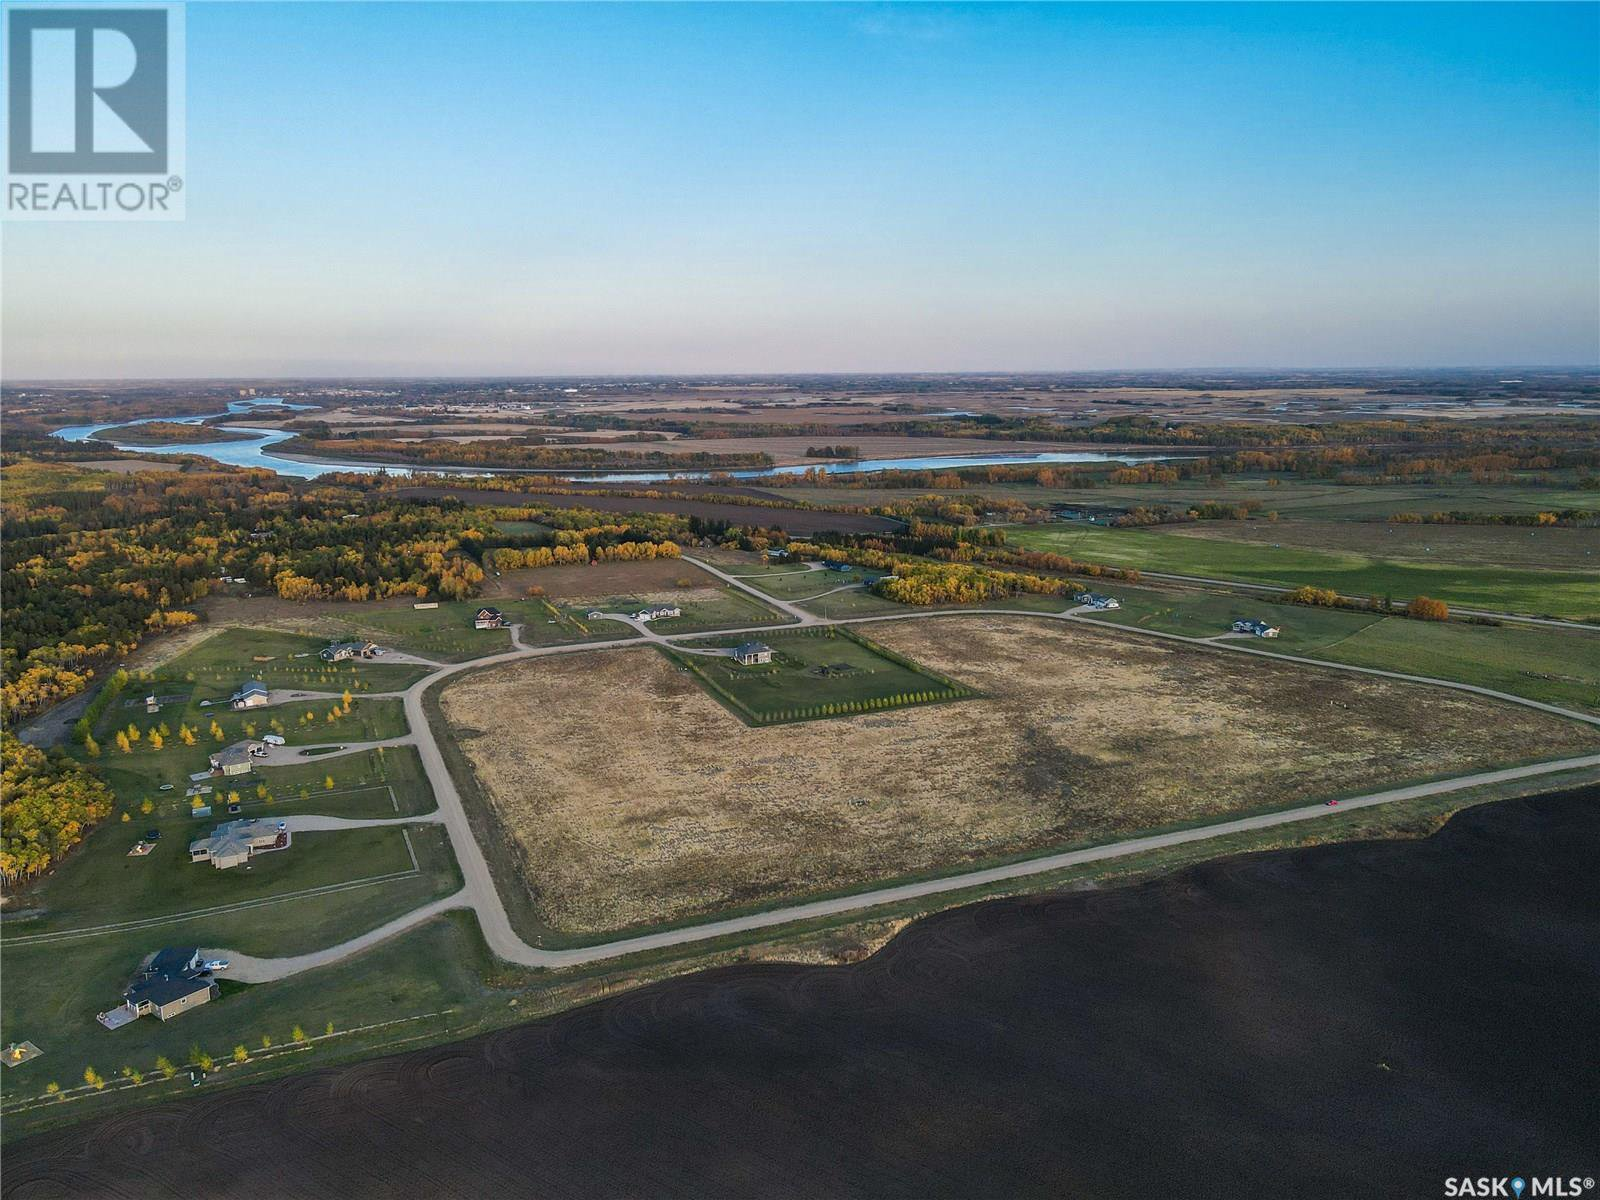 Main Photo: Hold Fast Estates Lot 3 Block 2 in Buckland Rm No. 491: Vacant Land for sale : MLS®# SK833997